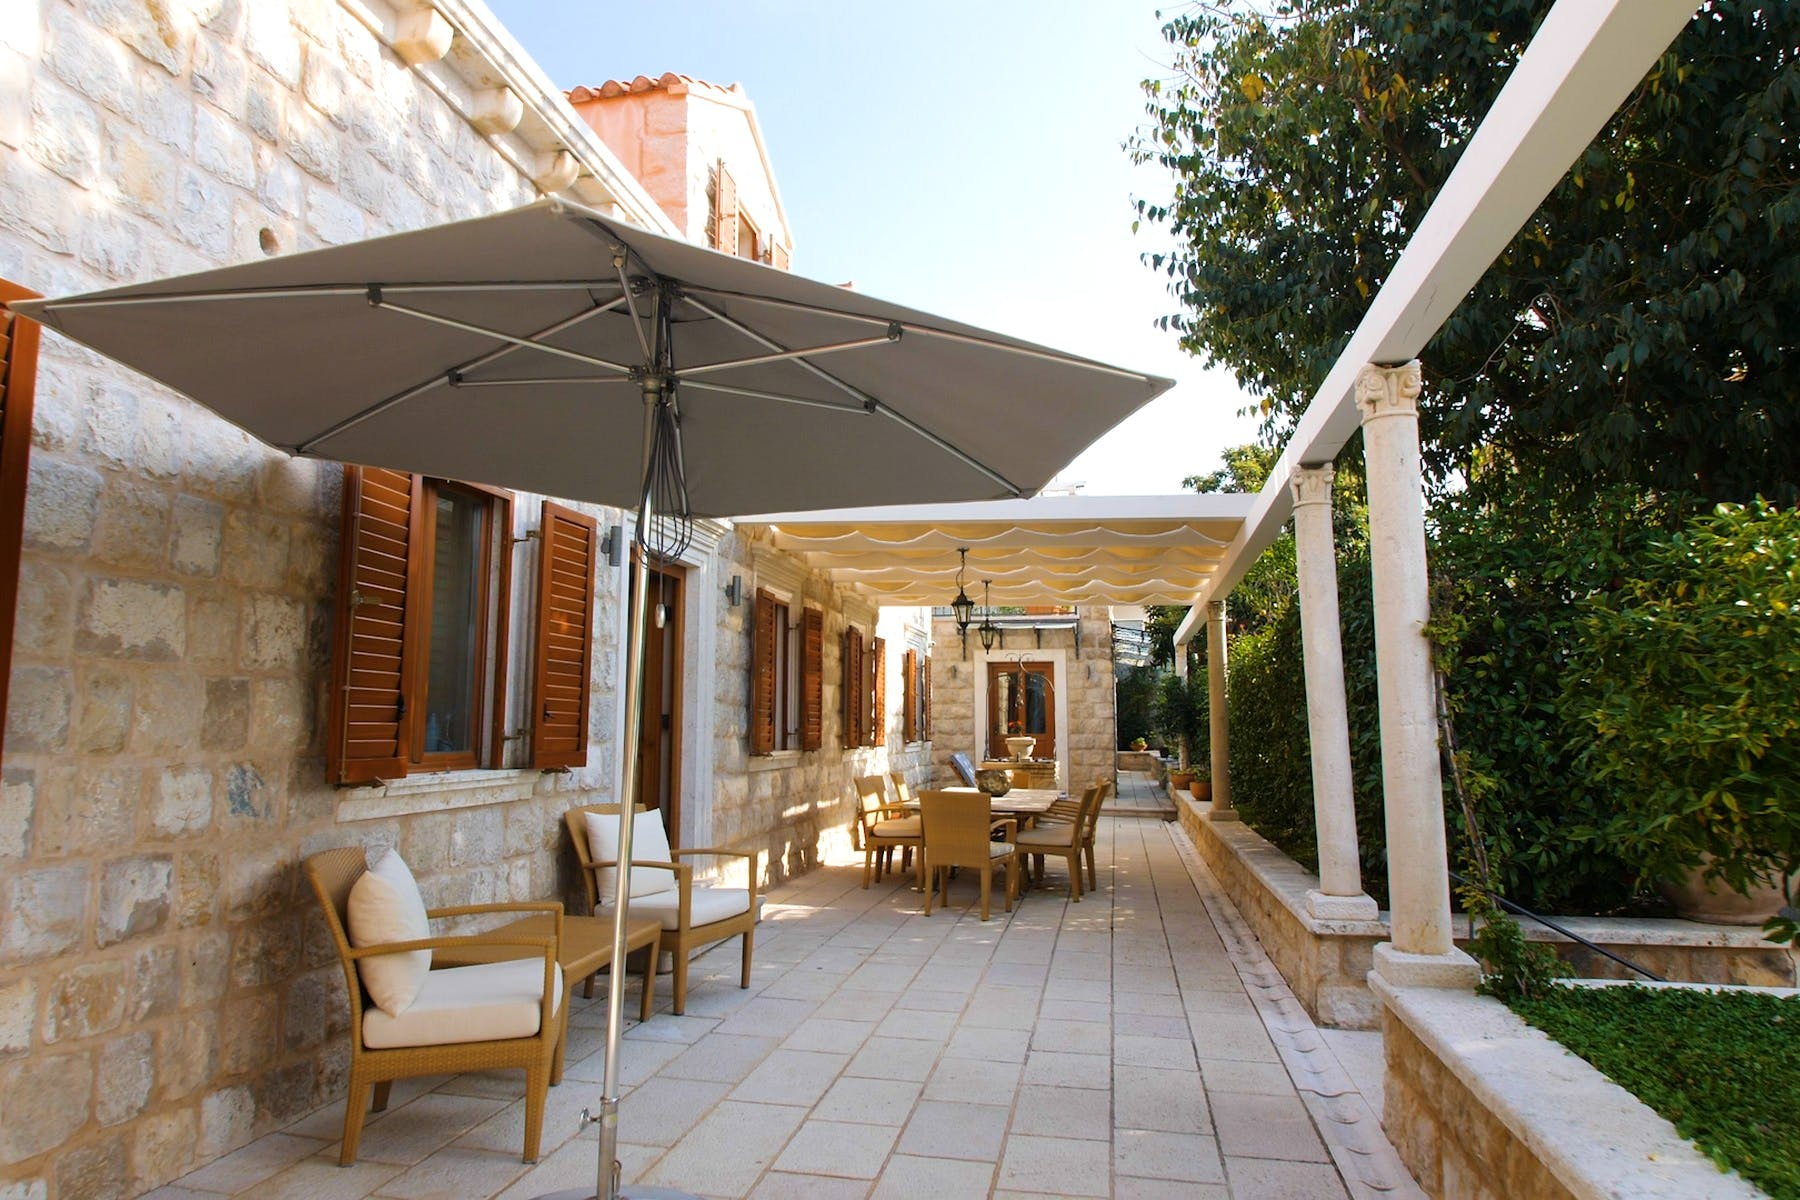 Terrace area with outdoor table